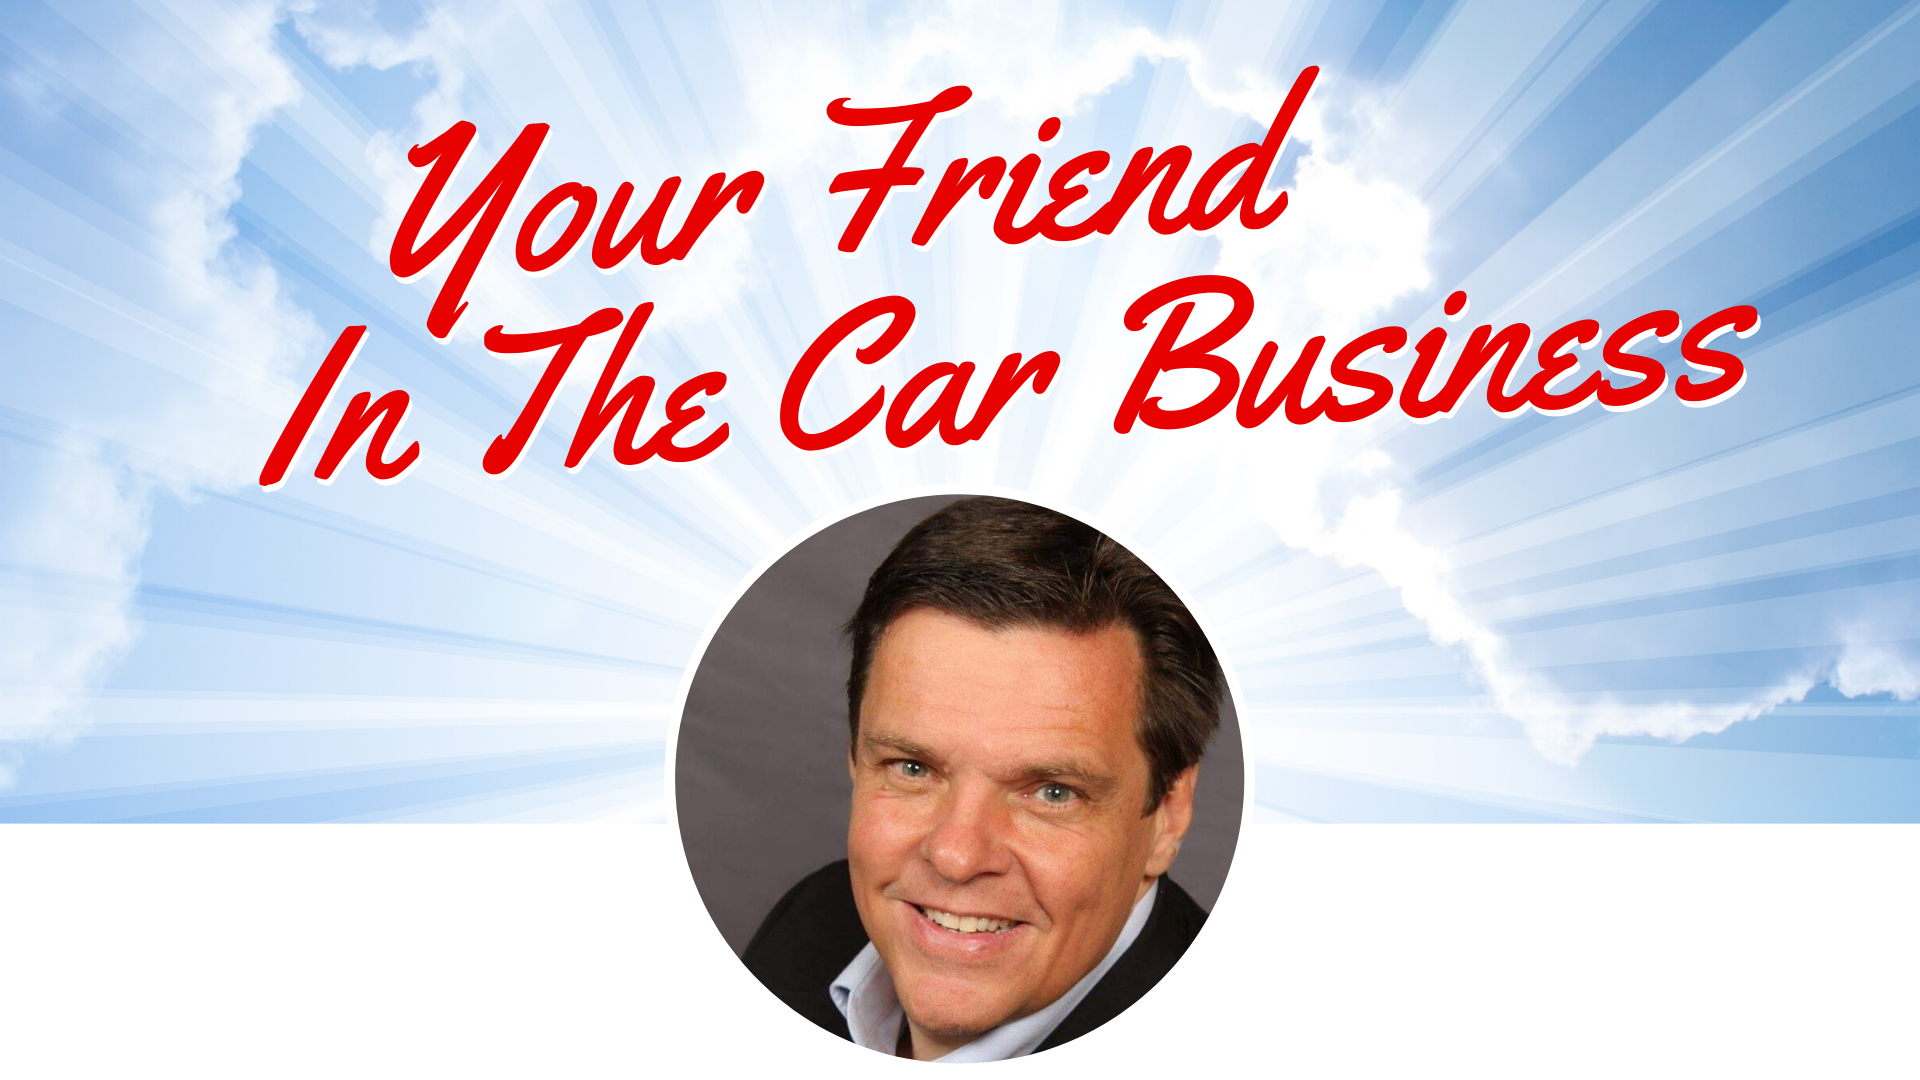 Terry Lancaster Your Friend in the car business